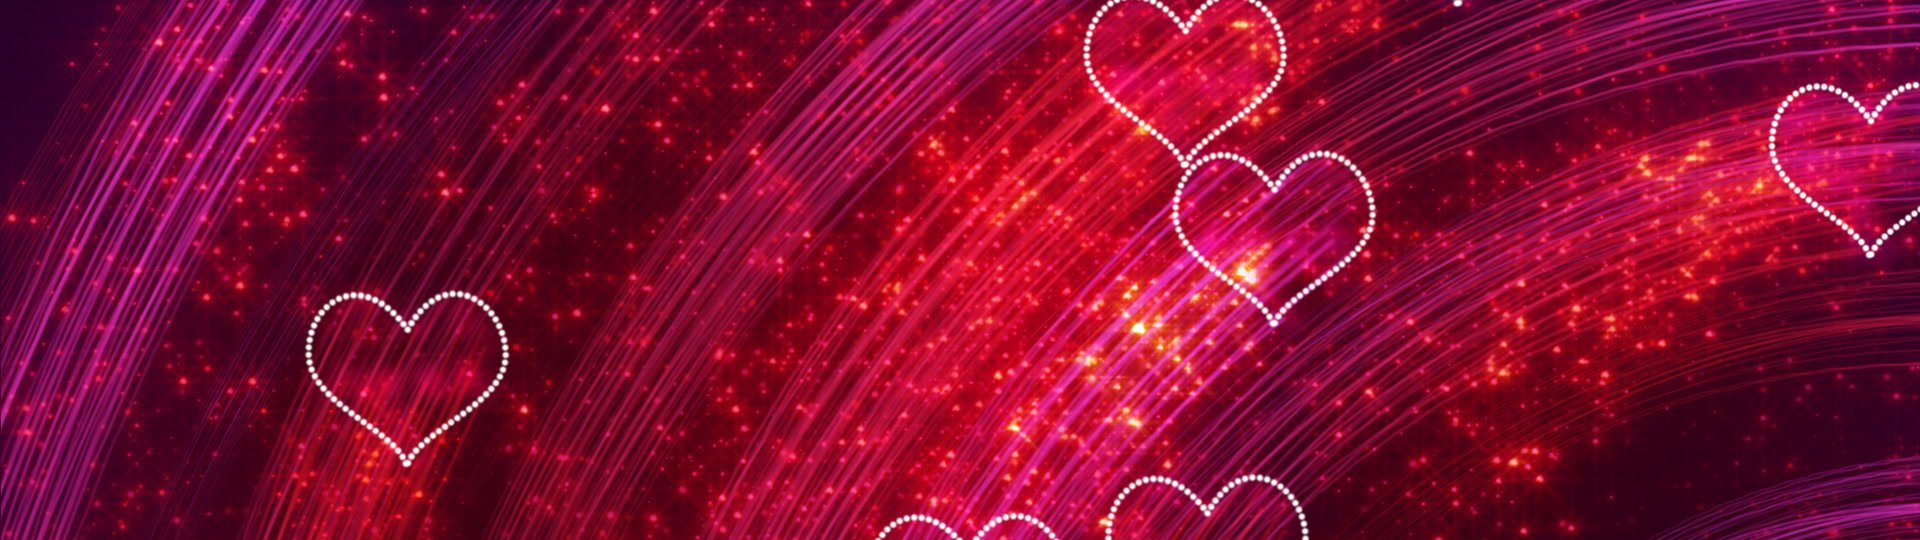 Heart shapes loopable romantic background | heart shapes. computer generated seamless loop romantic motion background HD 1080 progressive. - ID:12861